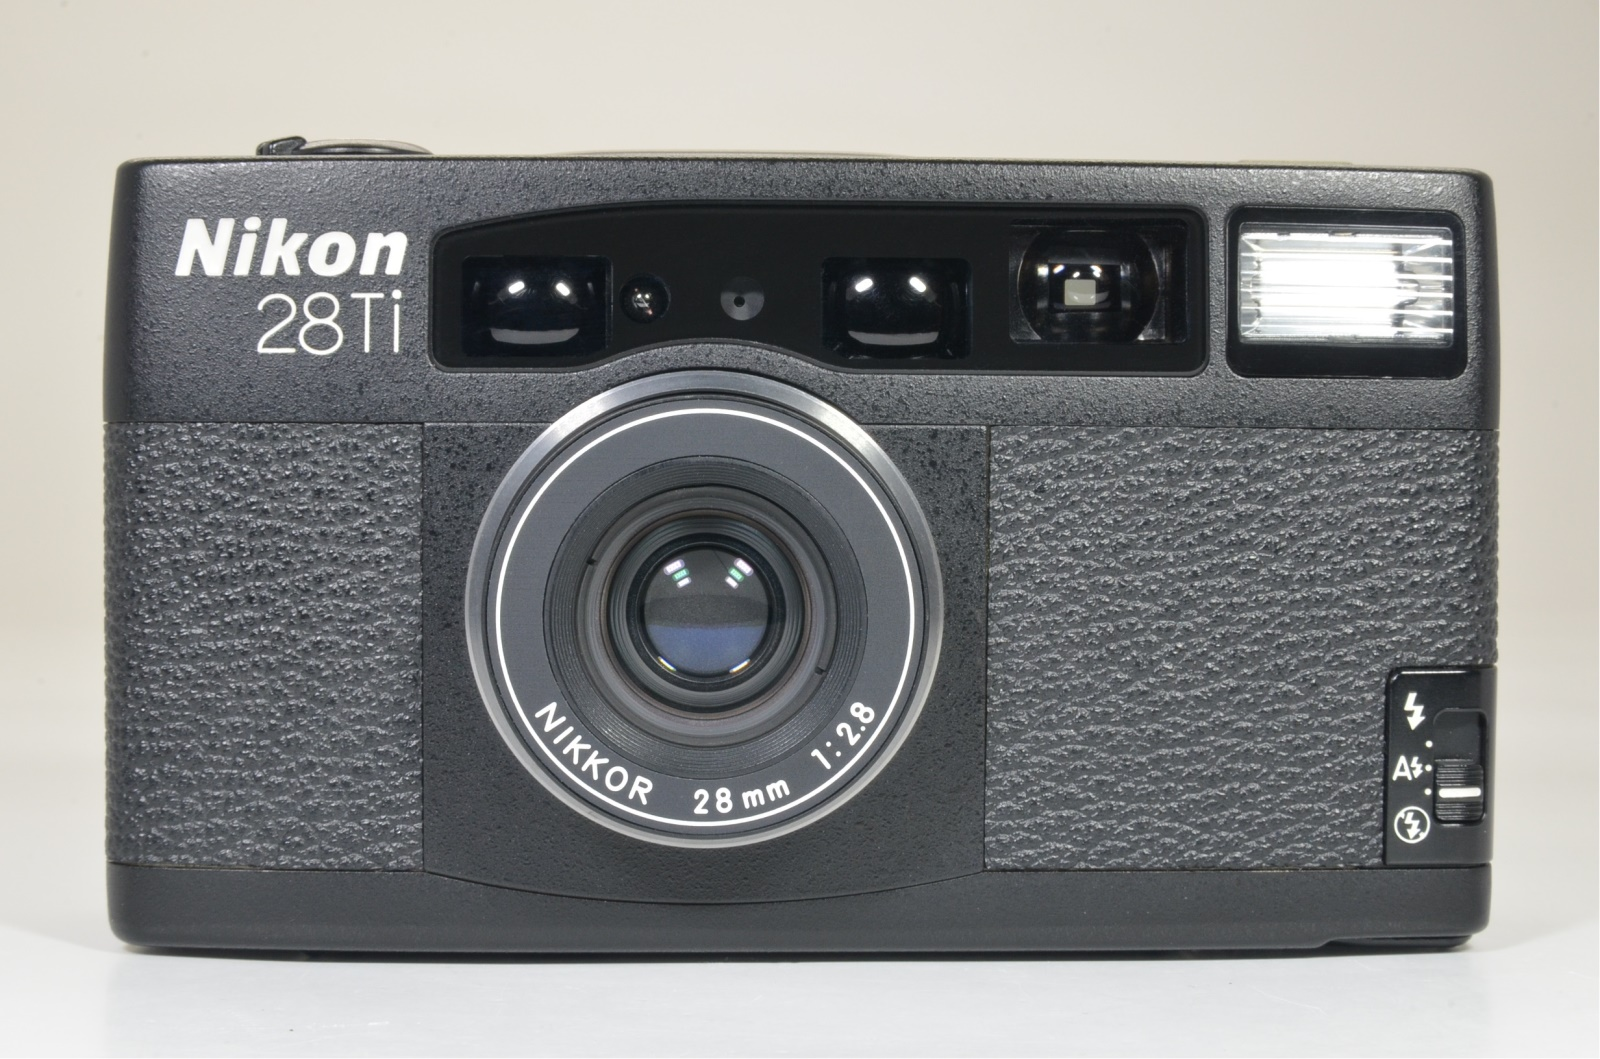 nikon 28ti p&s 35mm film camera lens 28mm f2.8 from japan shooting tested